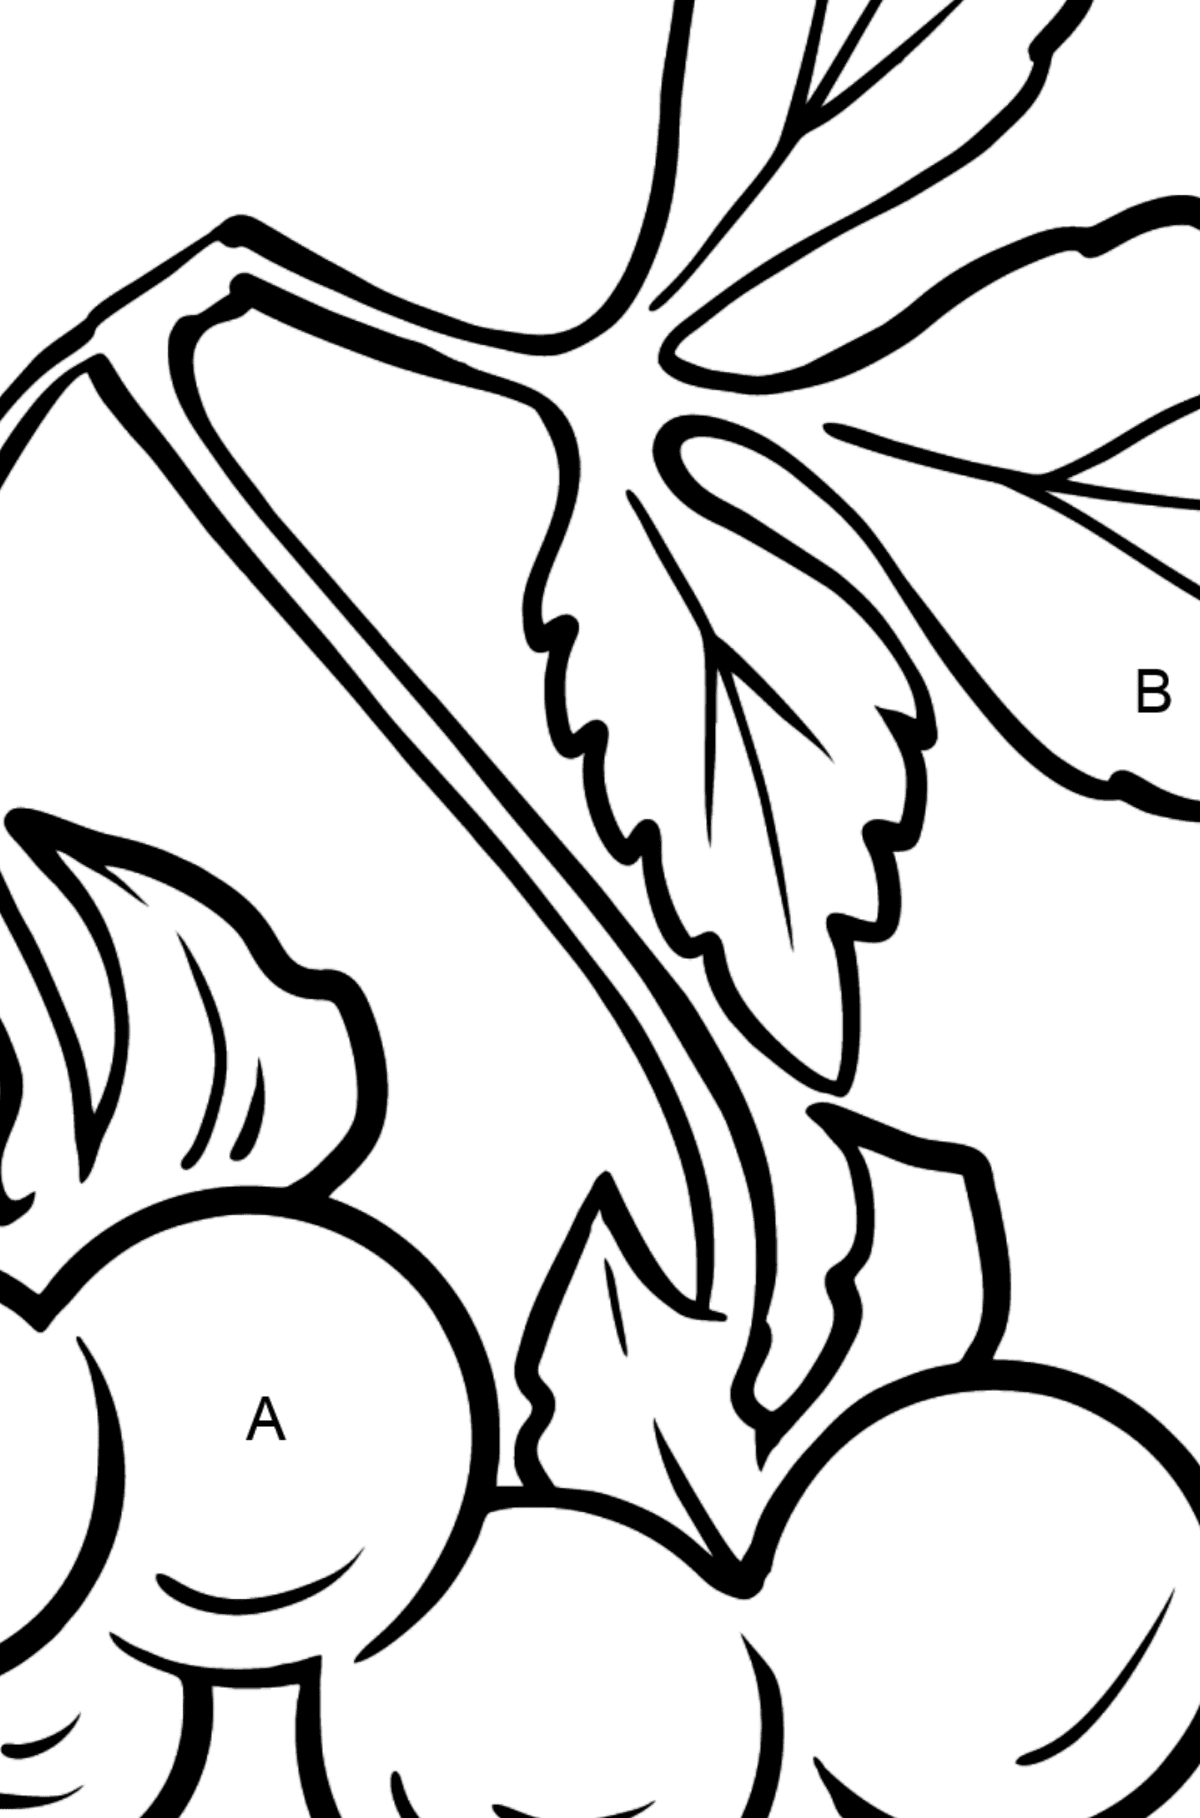 Blackberry coloring page - Coloring by Letters for Kids